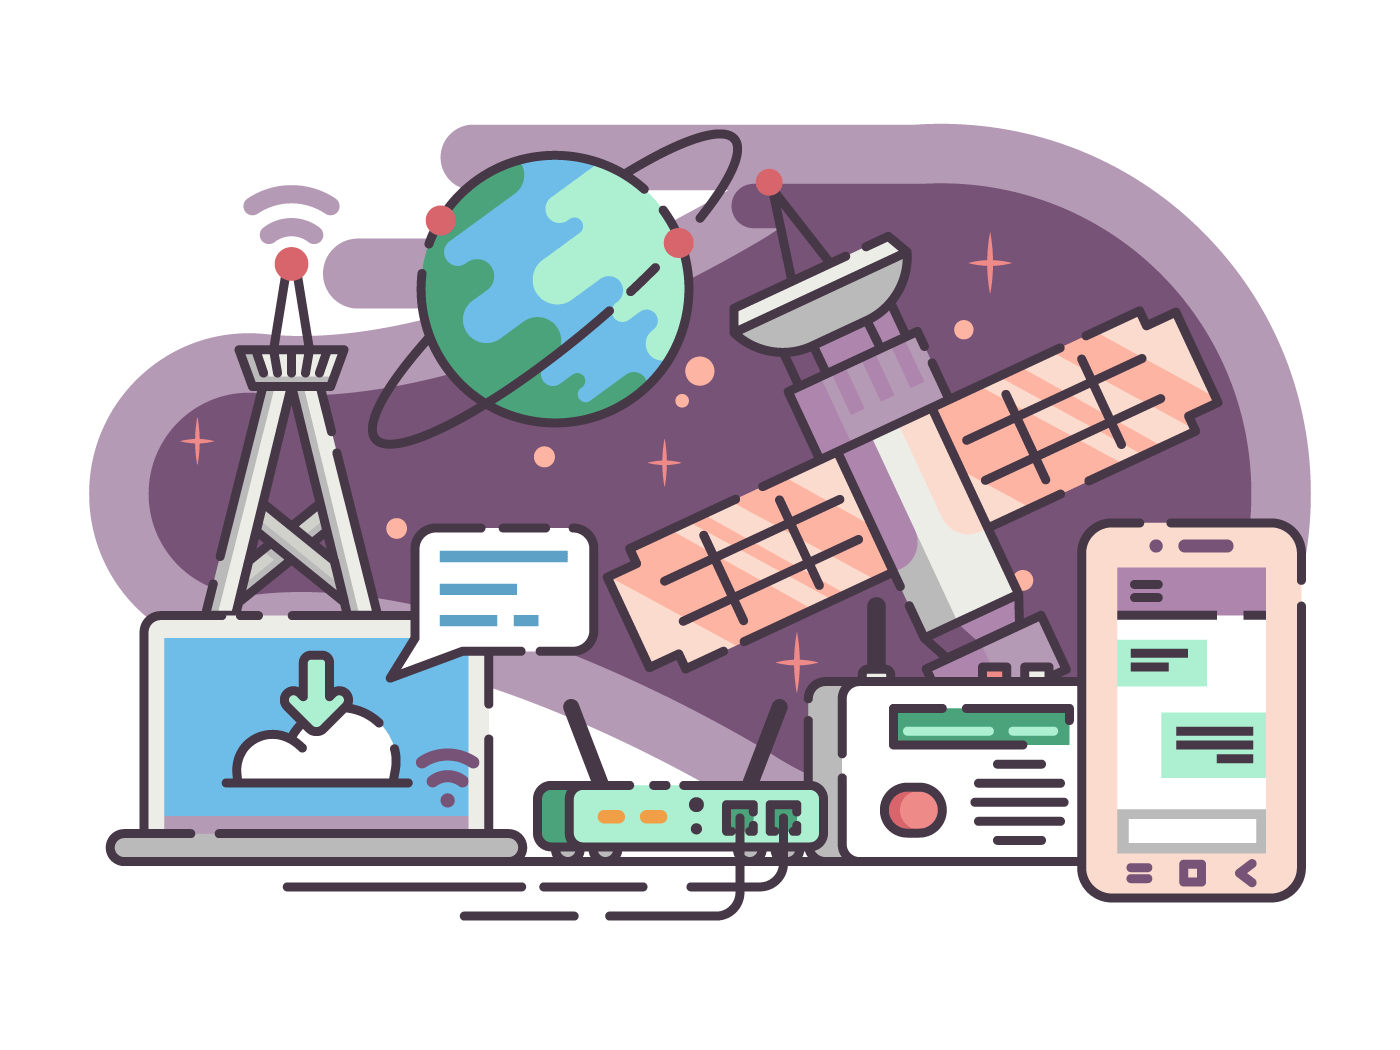 Space satellite for communication internet and telecommunications. Vector flat illustration